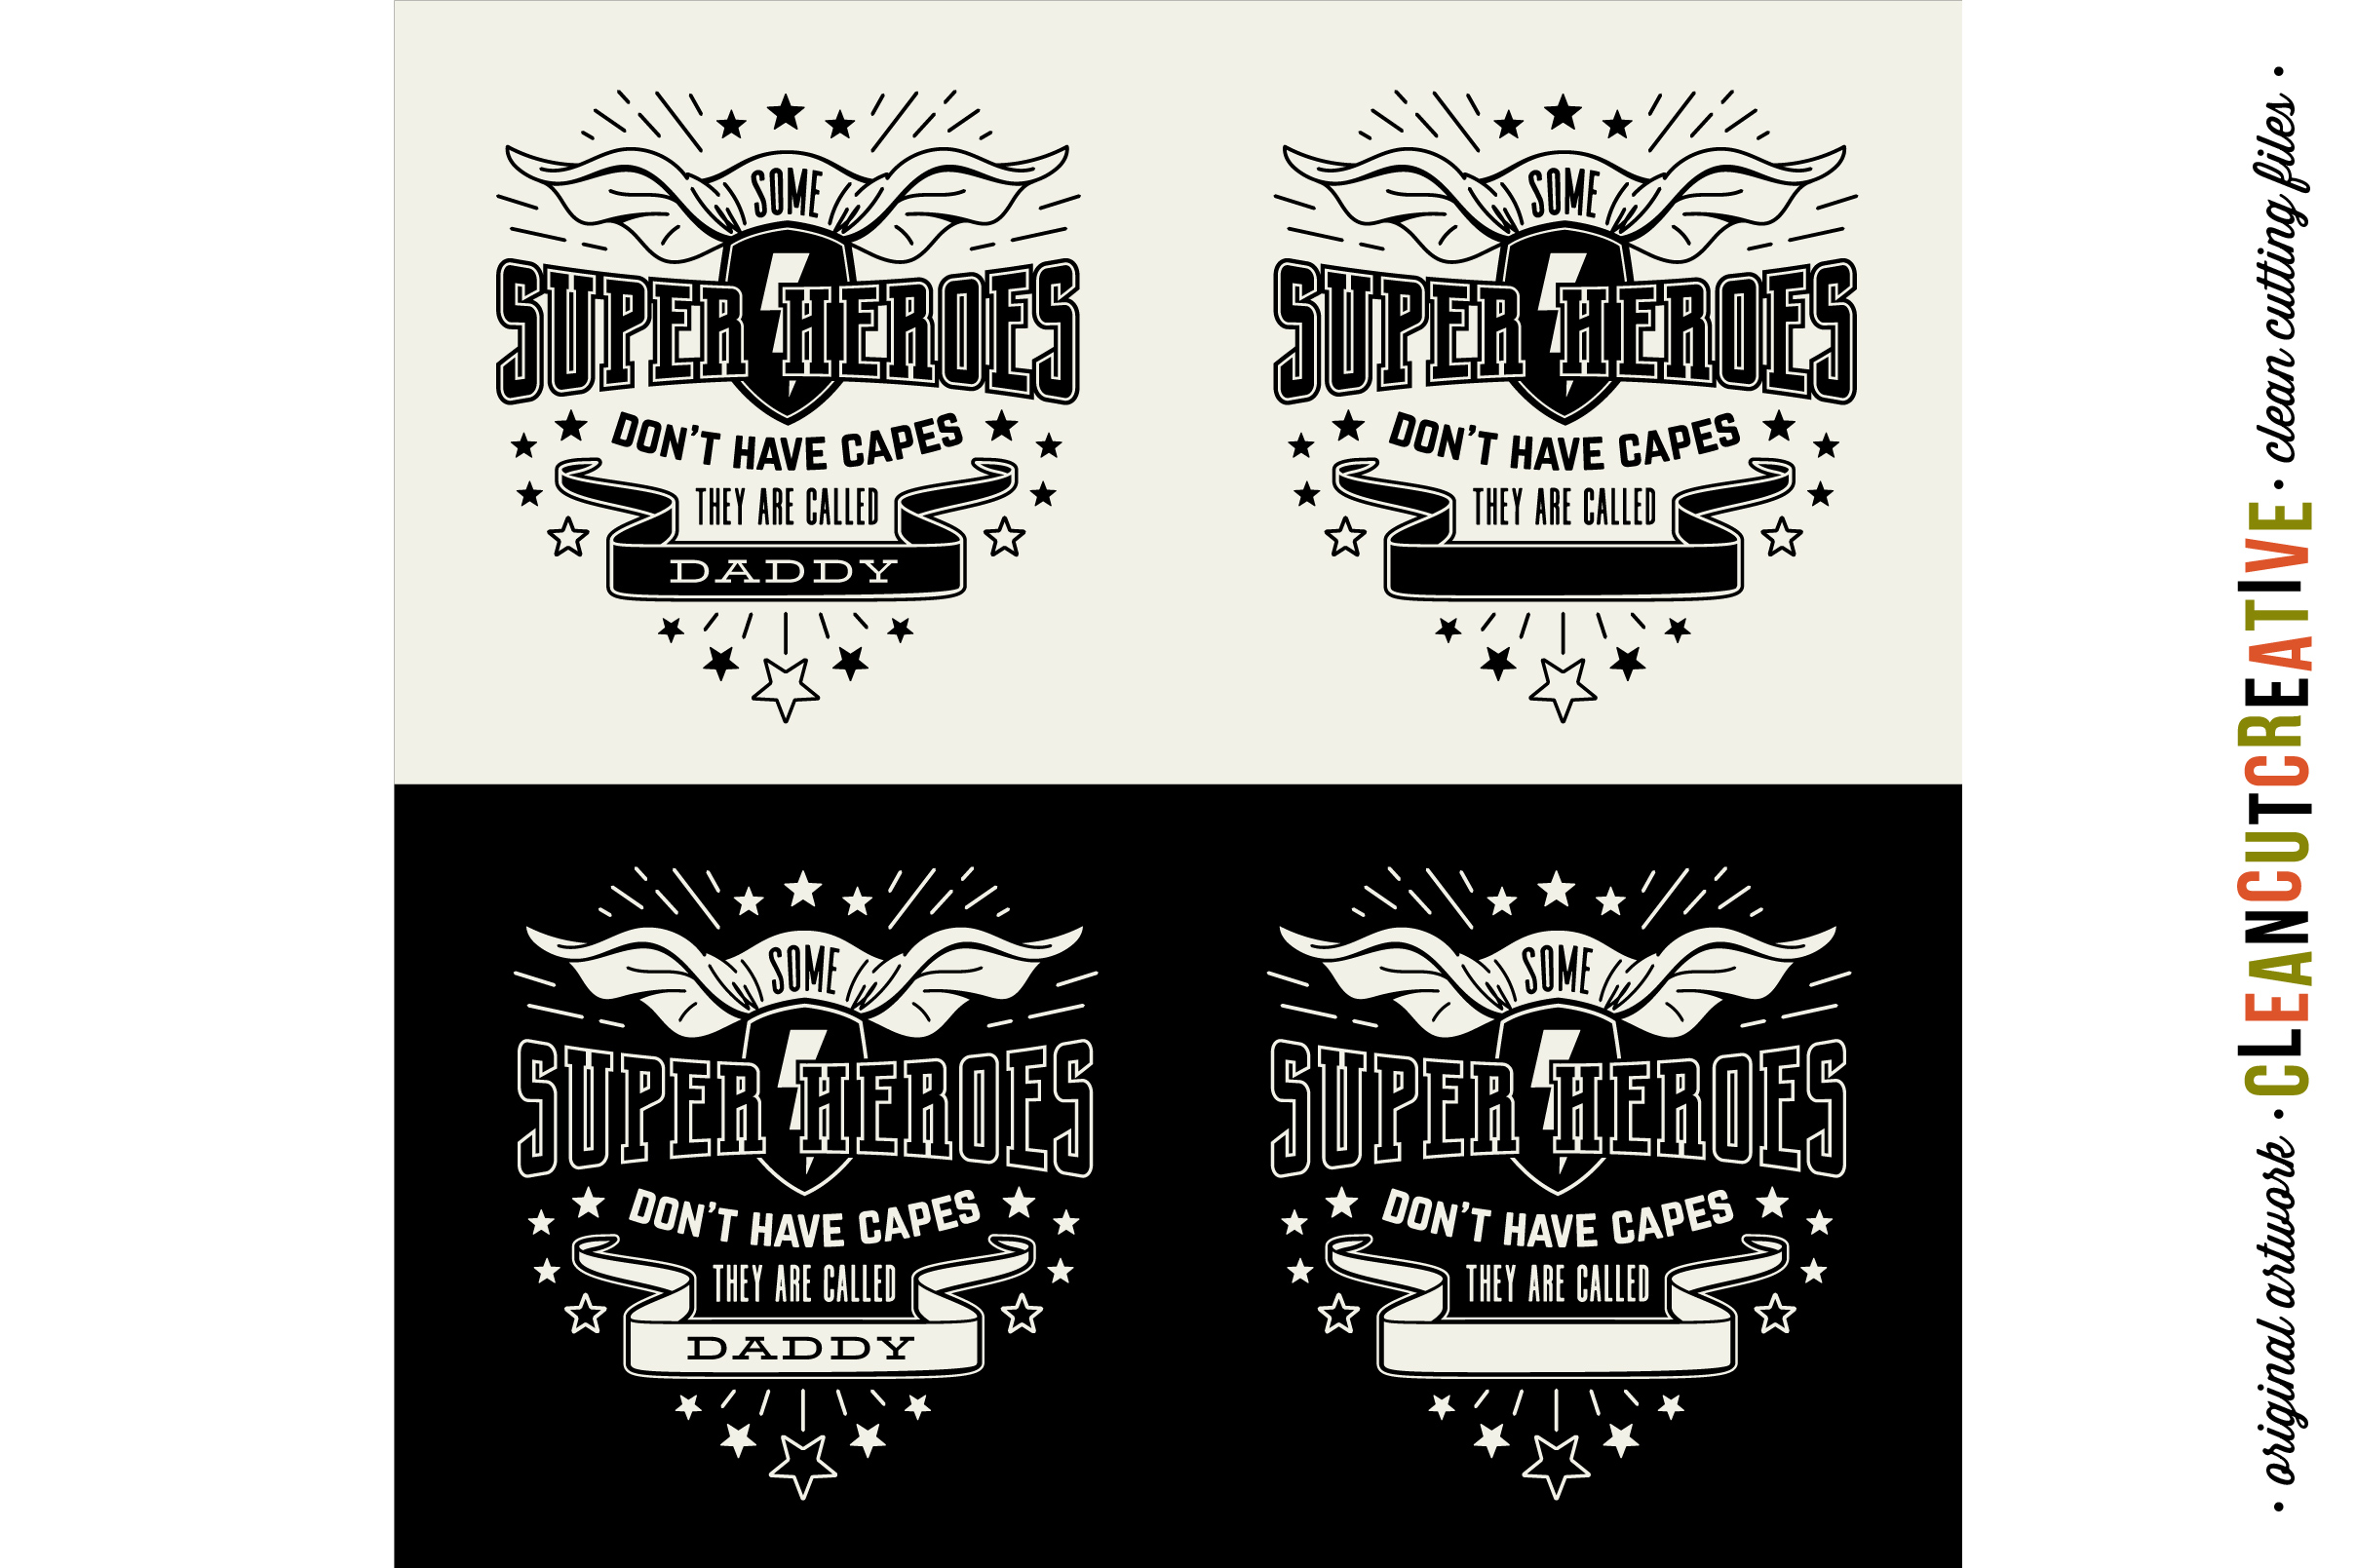 Some Super Heroes don't have Capes - they are called DADDY/YOUR NAME - SVG DXF EPS PNG - Cricut & Silhouette - clean cutting files example image 3